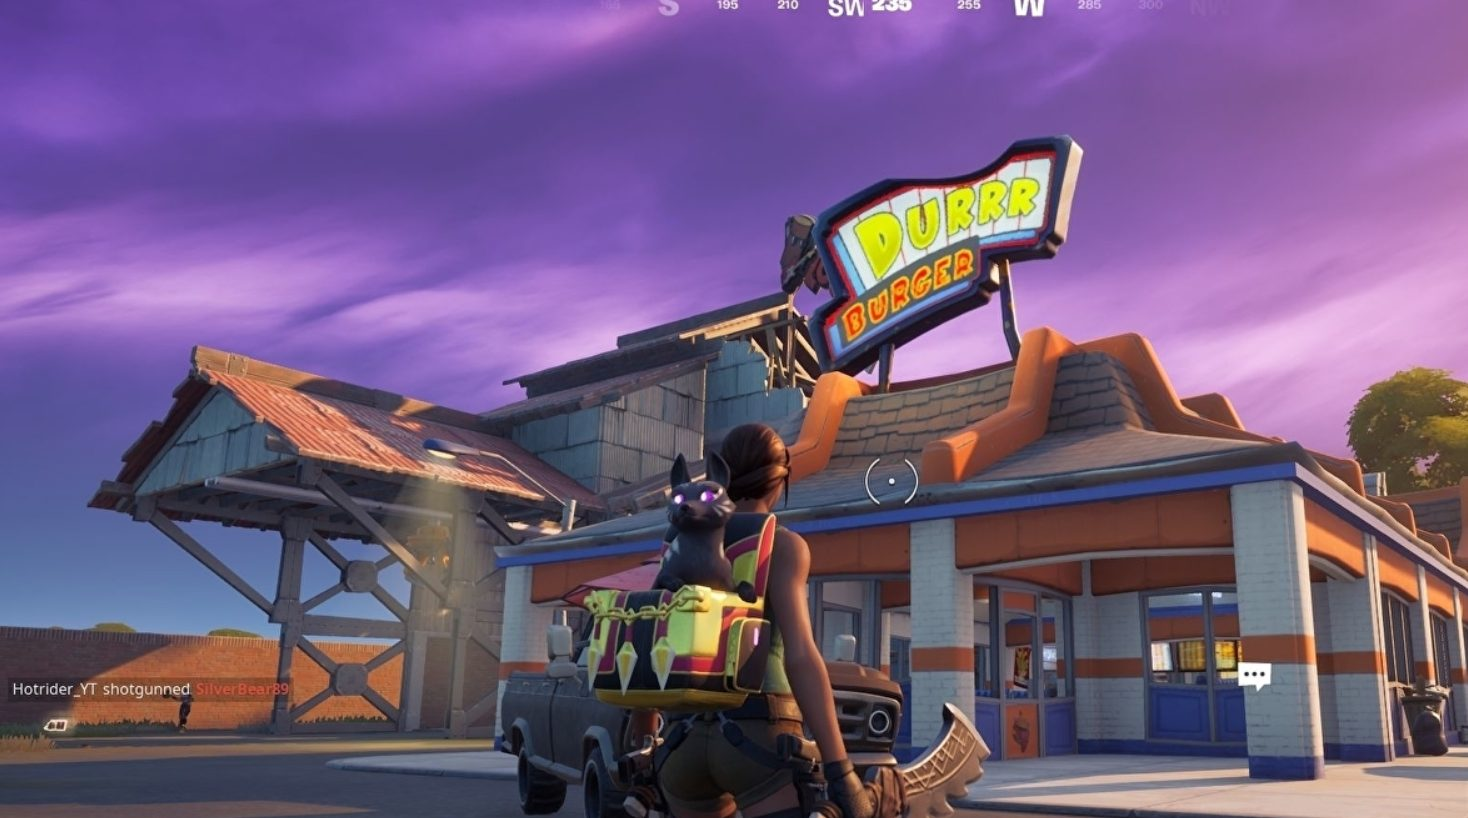 How to Complete Dance in Durrr Burger Kitchen Quest